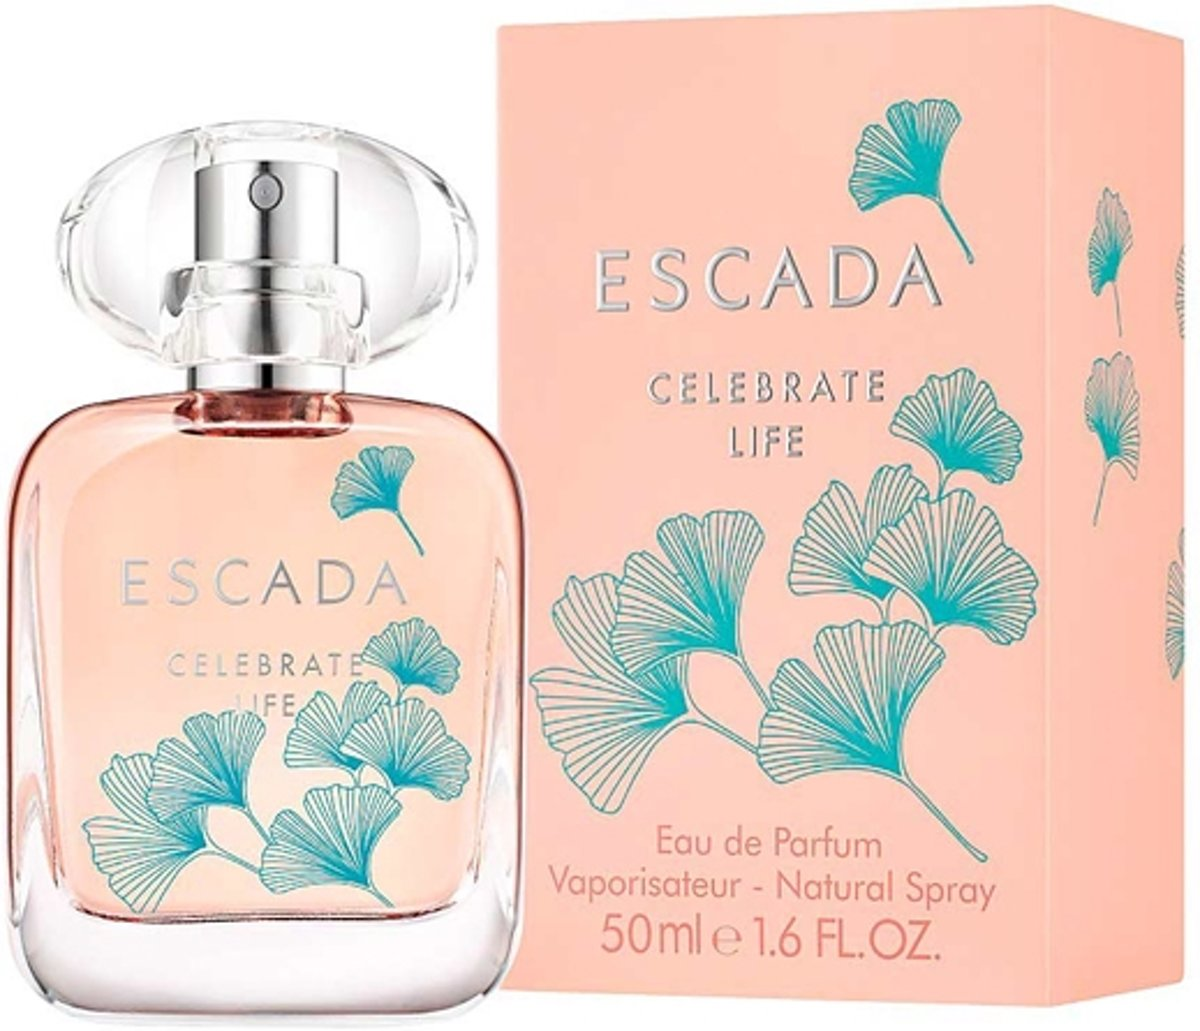 Escada Celebrate Life 30ml EDP Spray